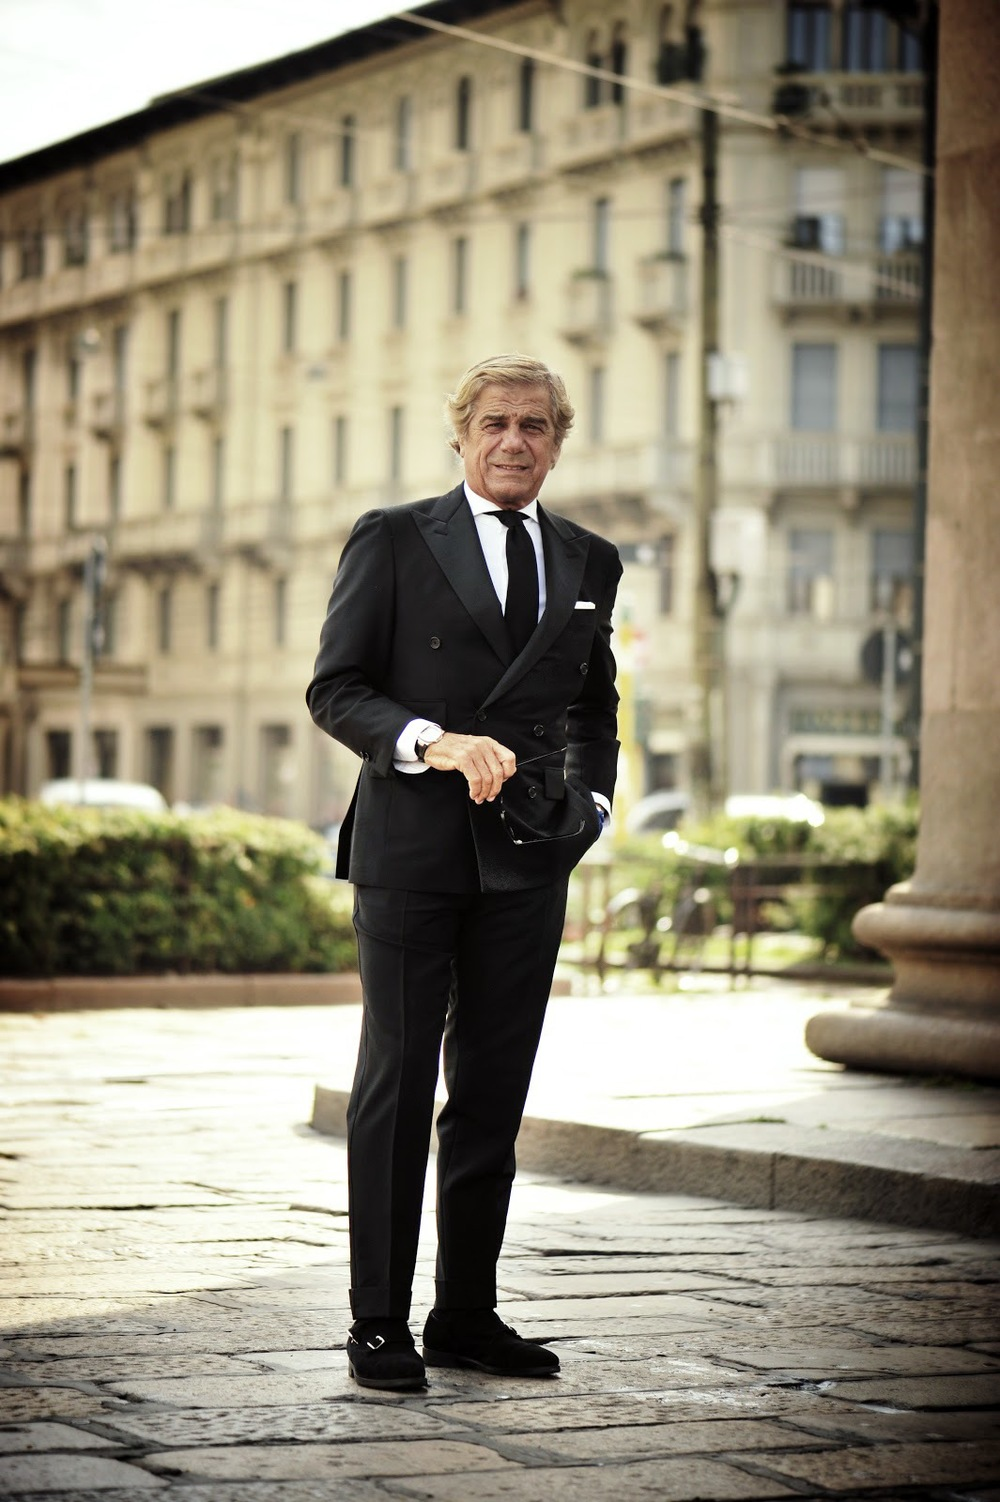 lino-ieluzzi-black-suit-lookbook-streetstyle-men-fashion-icon.jpg